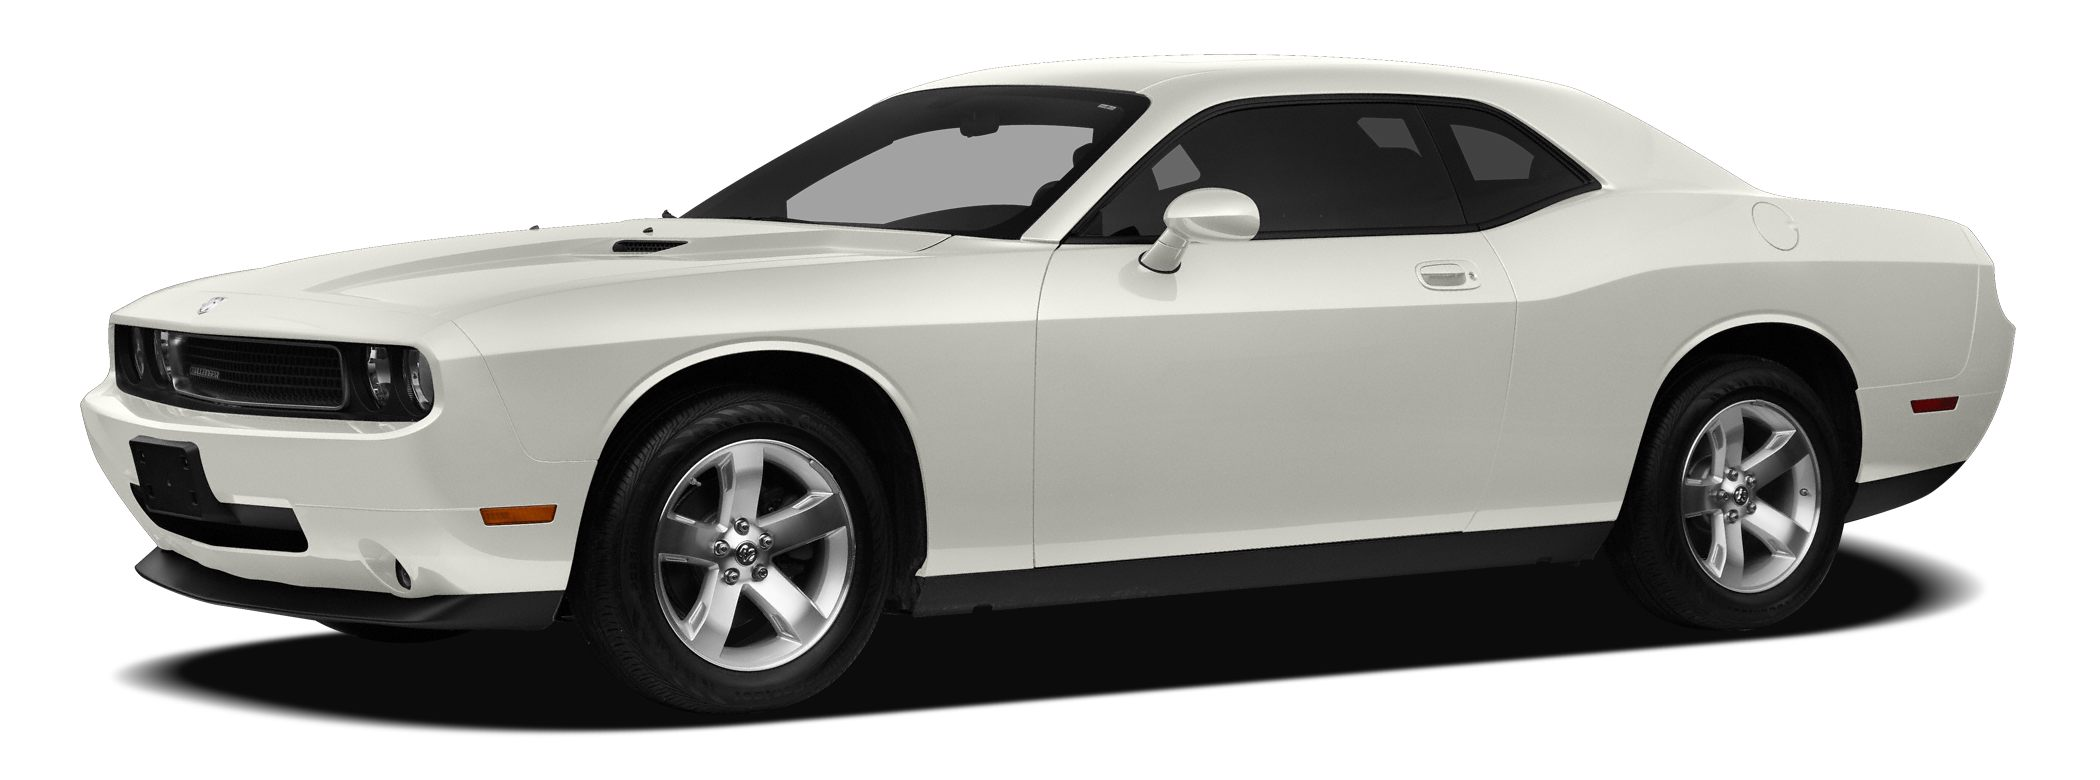 2010 Dodge Challenger SE One Year Free Maintanence and Clean Carfax Your satisfaction is our busi